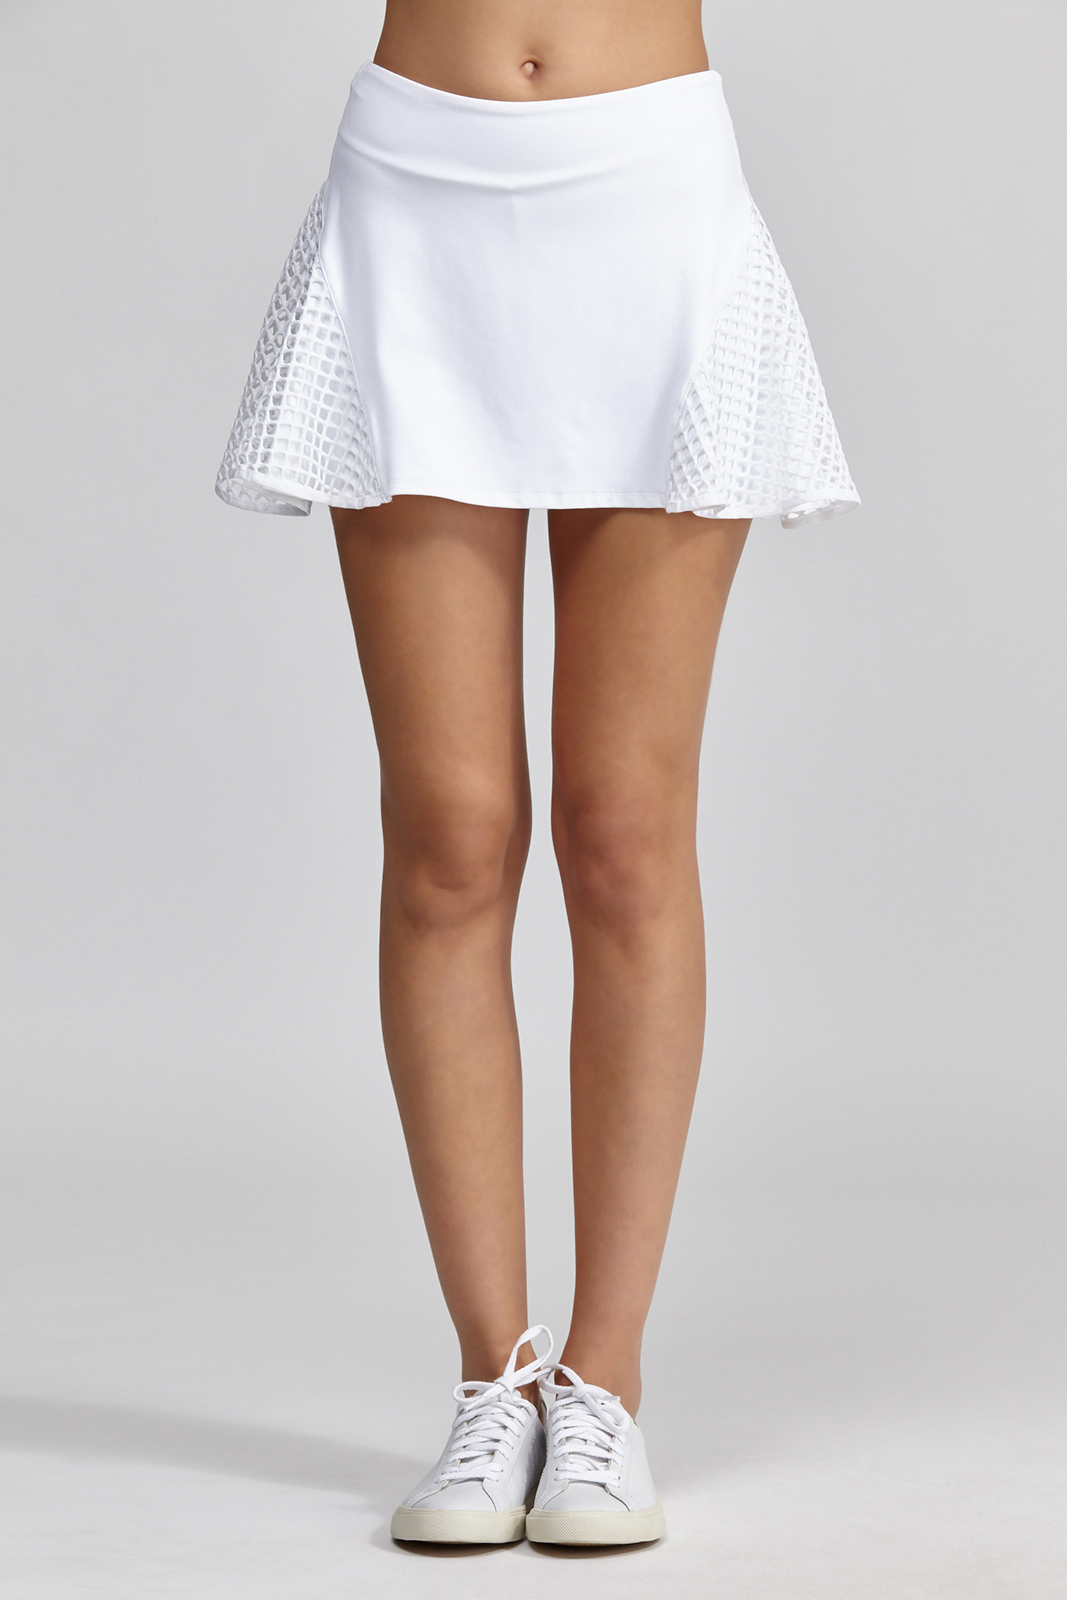 Shop white tennis skirts from DICK'S Sporting Goods today. If you find a lower price on white tennis skirts somewhere else, we'll match it with our Best Price Guarantee! Check out customer reviews on white tennis skirts and save big on a variety of products. Plus, ScoreCard members earn points on .